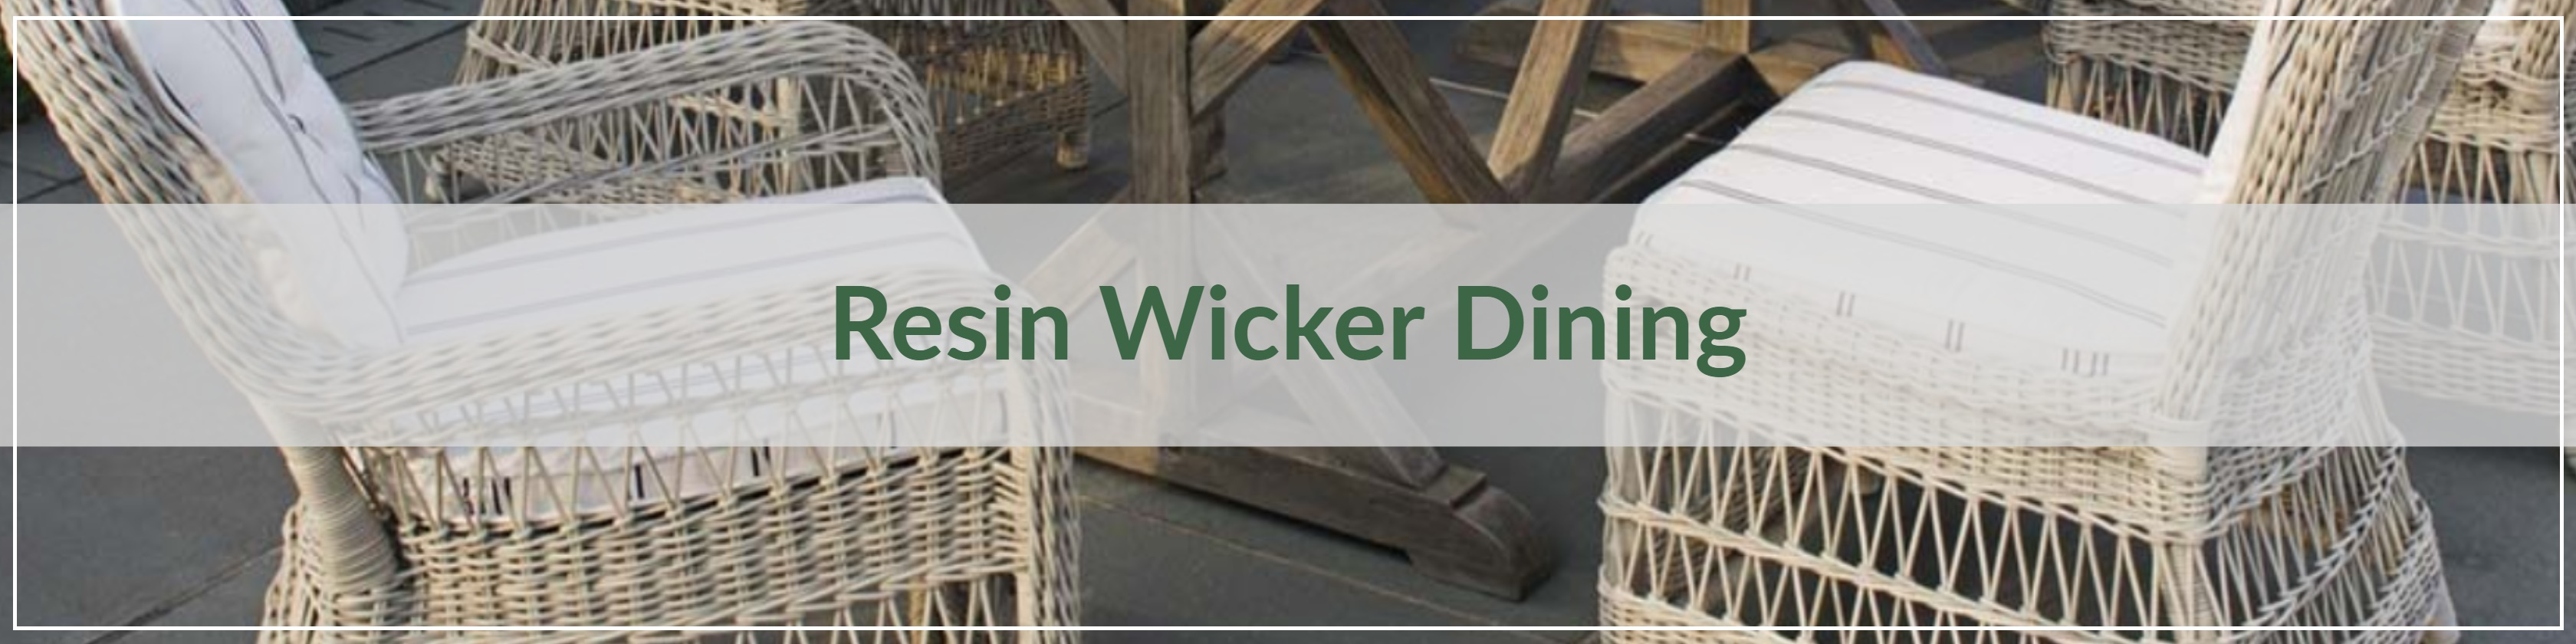 Resin Wicker Dining